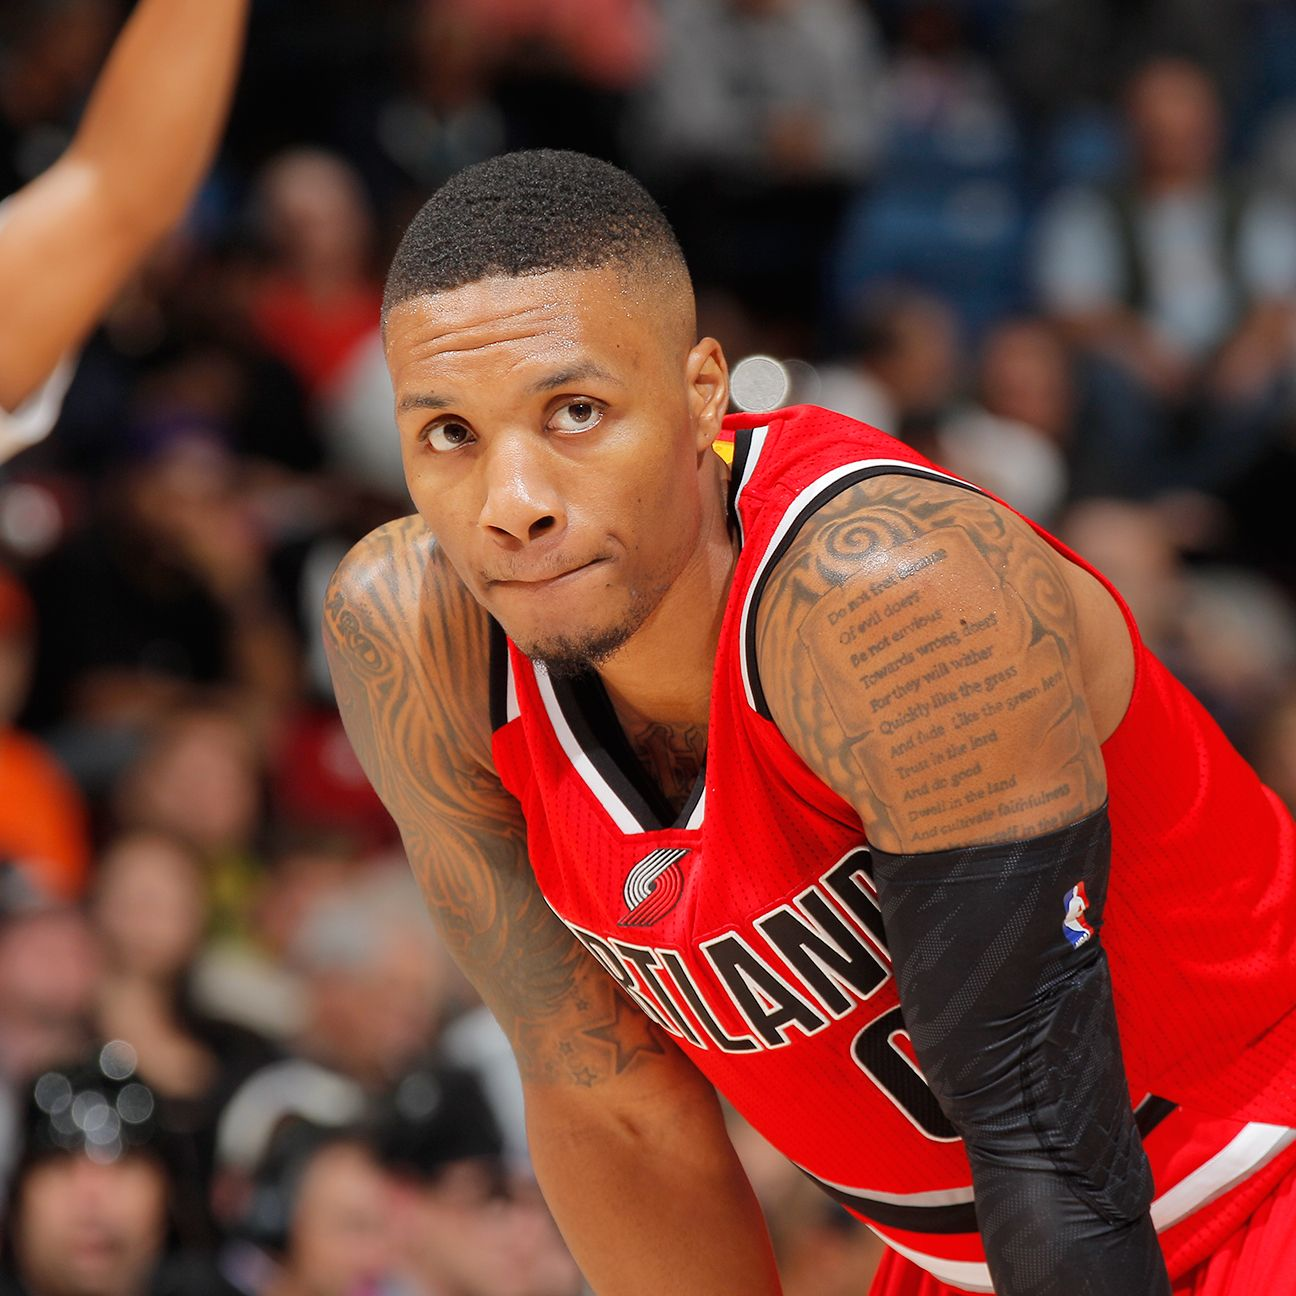 Damian Lillard: Damian Lillard Of Portland Trail Blazers Receives College